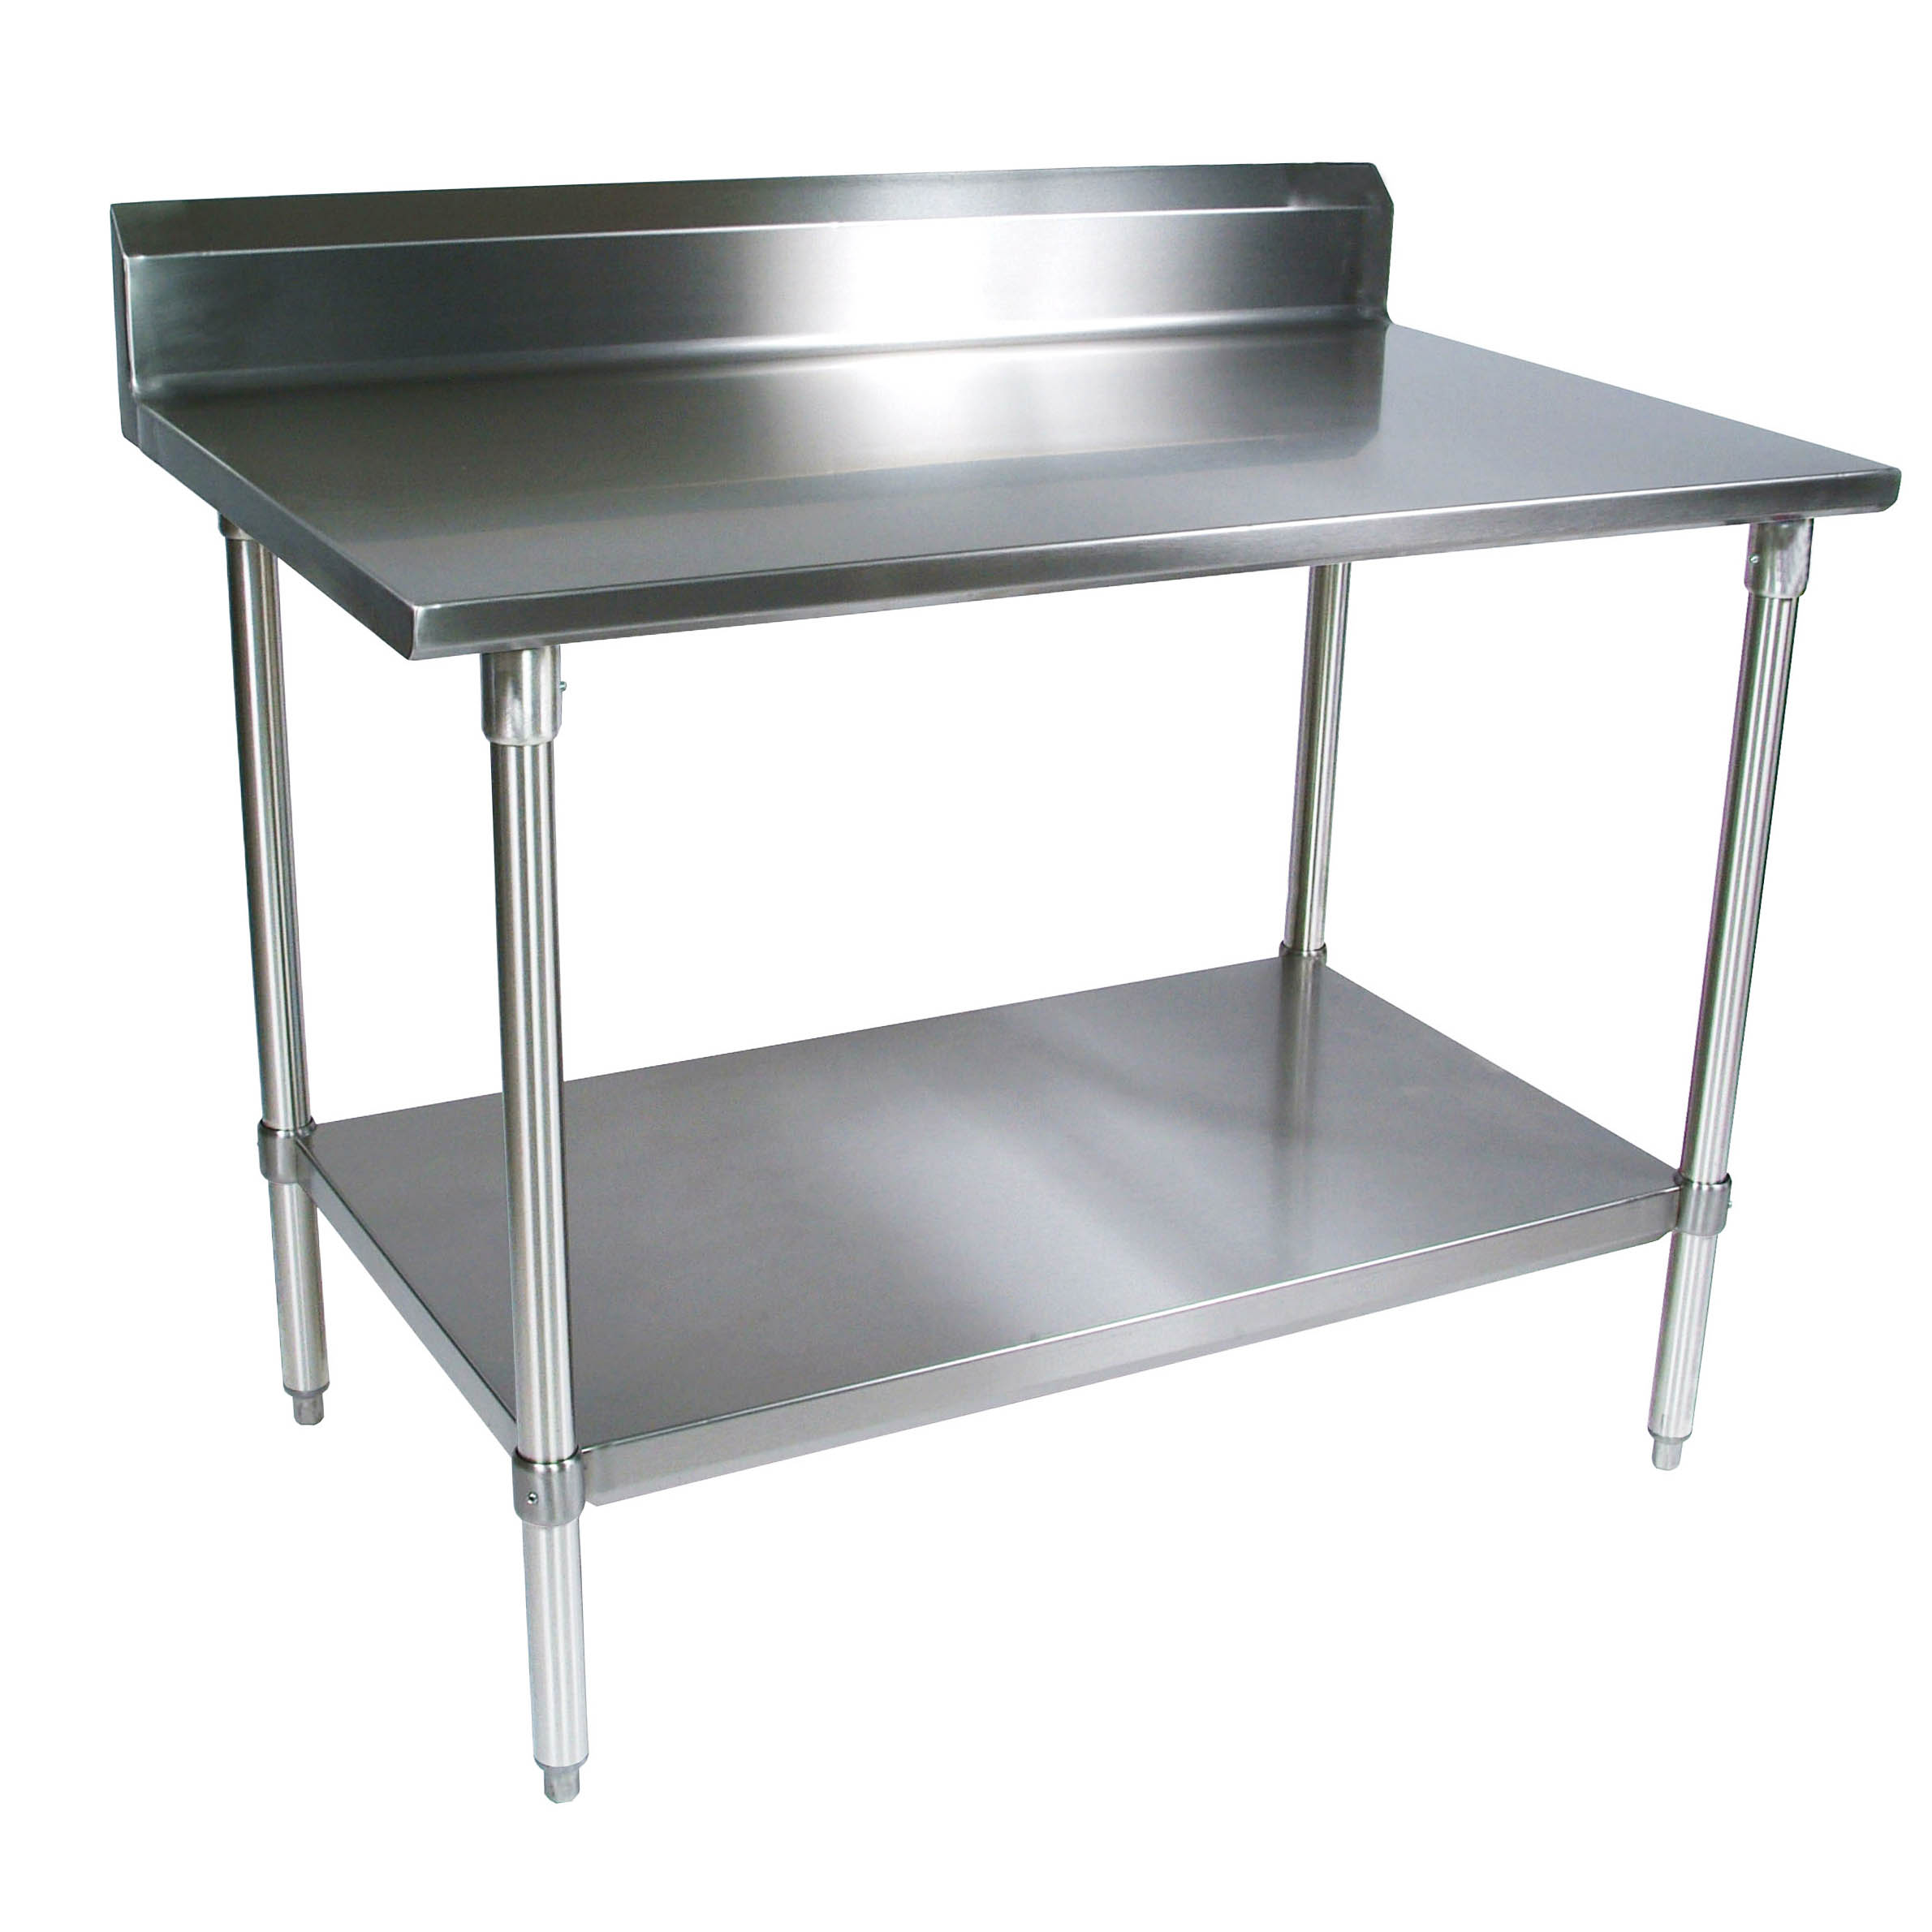 BK Resources CTTR5-7230 work table,  63